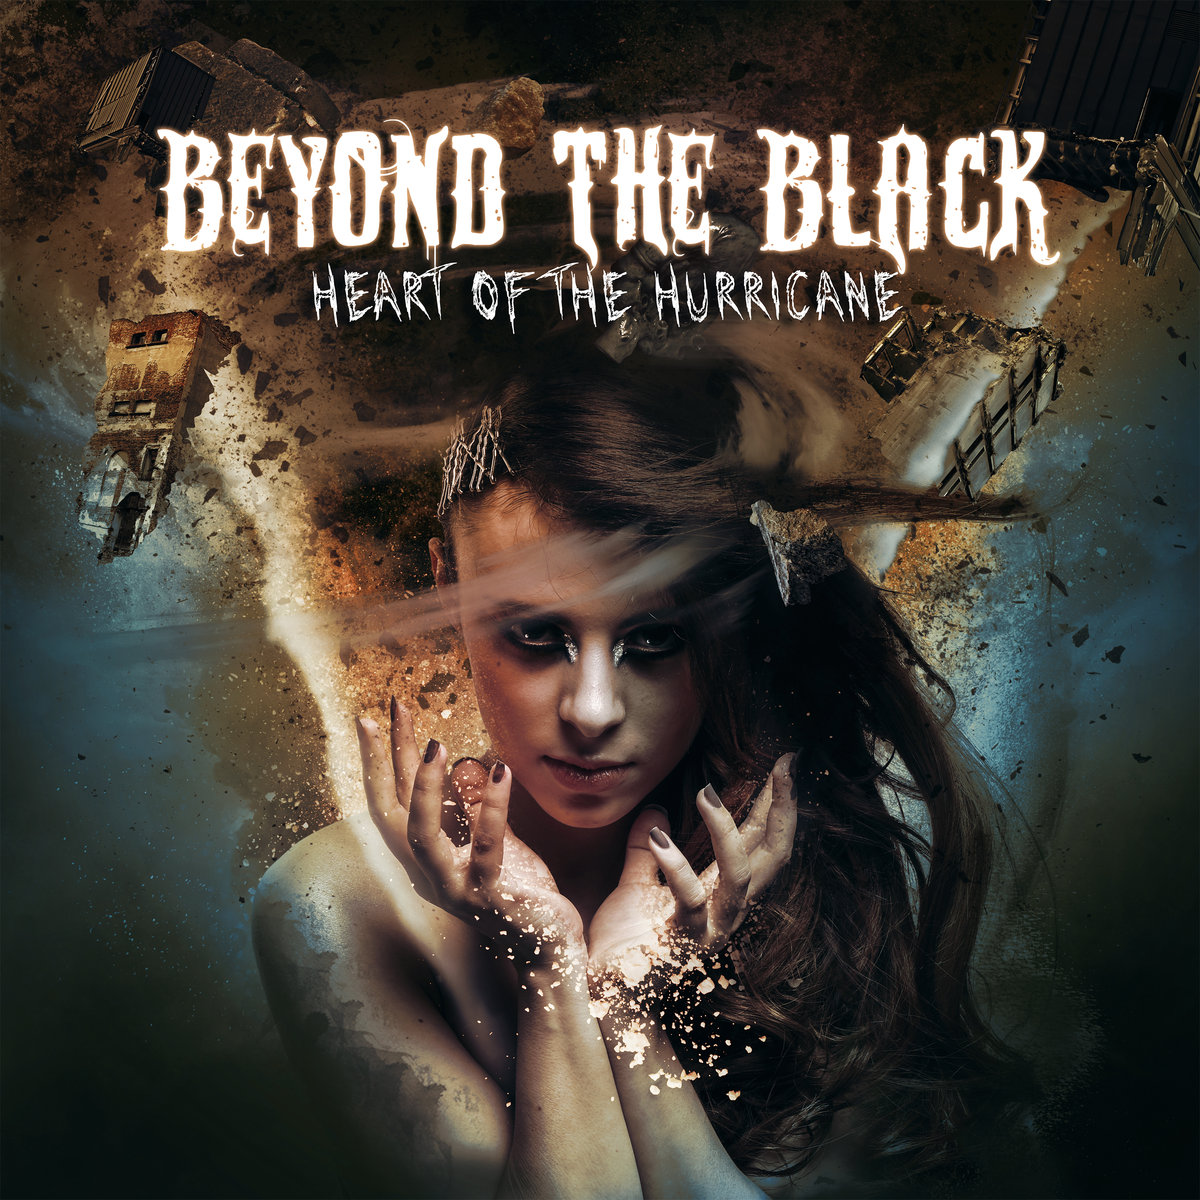 beyond the black heart of the hurricane album cover